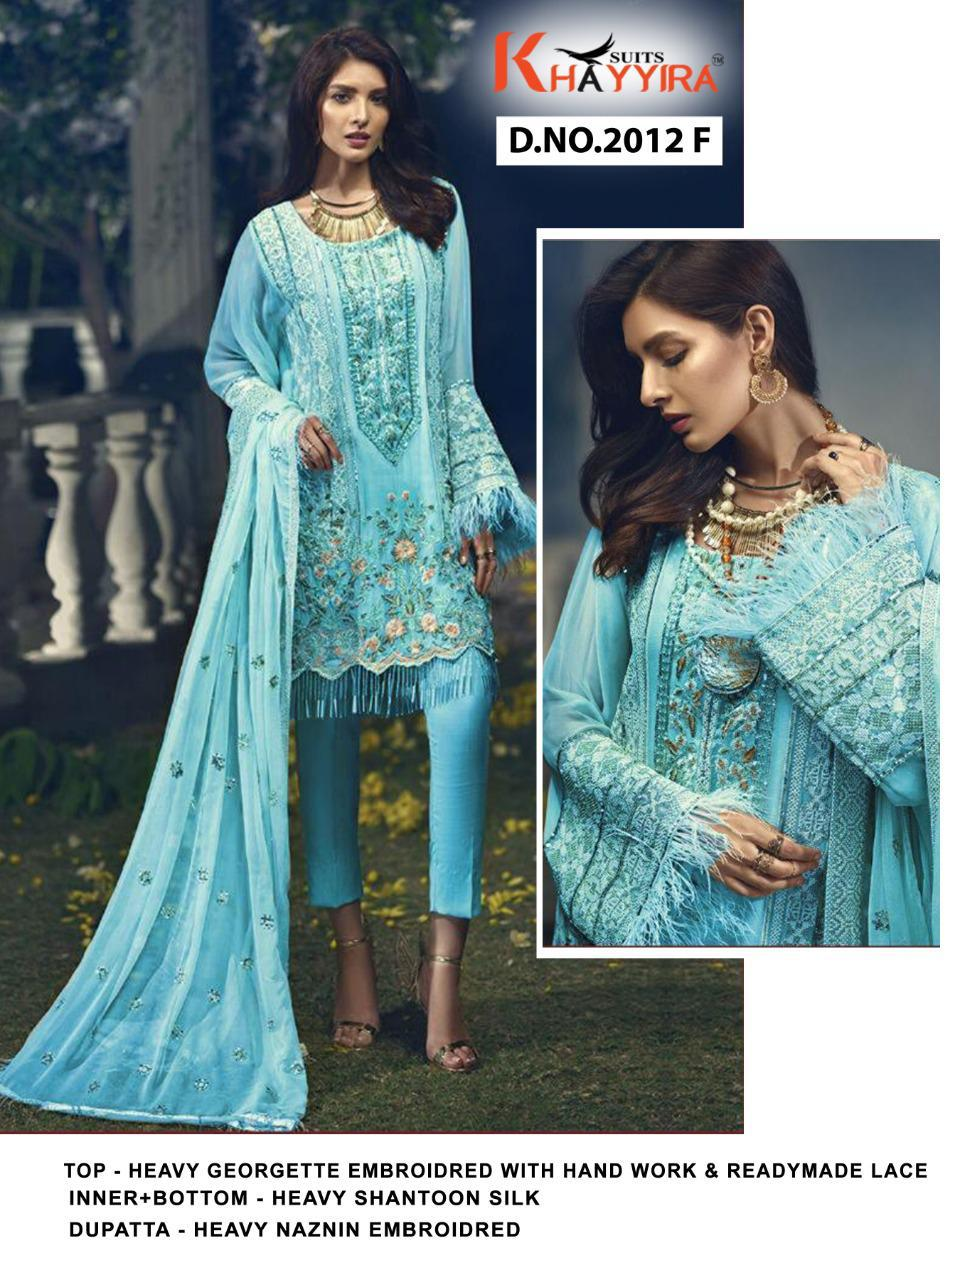 KHAYYIRA 2012 F SKY BLUE CROSS STITCH SALWAR KAMEEZ